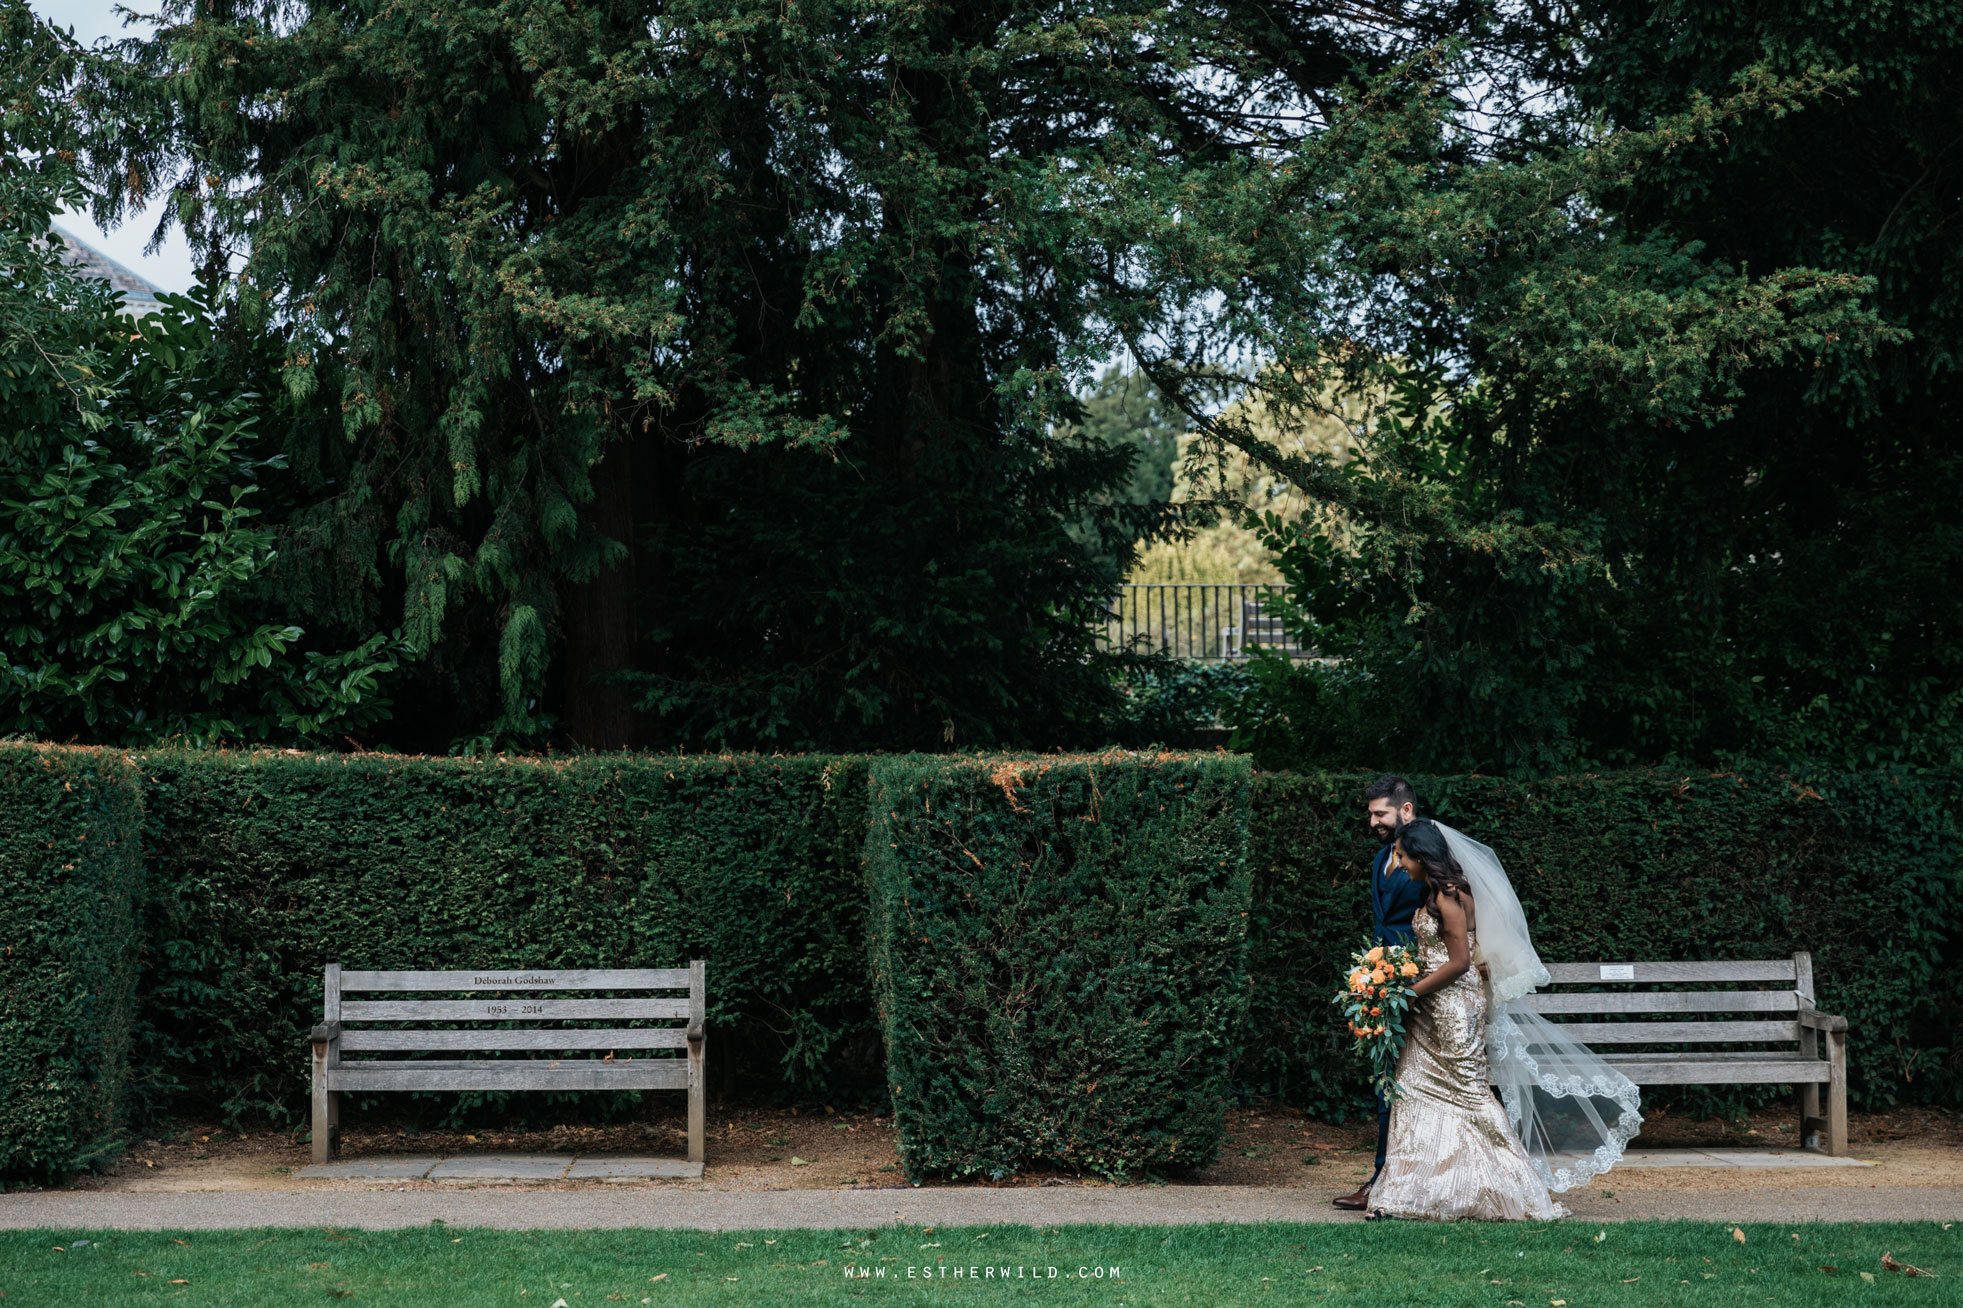 Twickenham_Registry_Office_London_Wedding_Ceremony_Esther_Wild_Photographer_IMG_0749.jpg